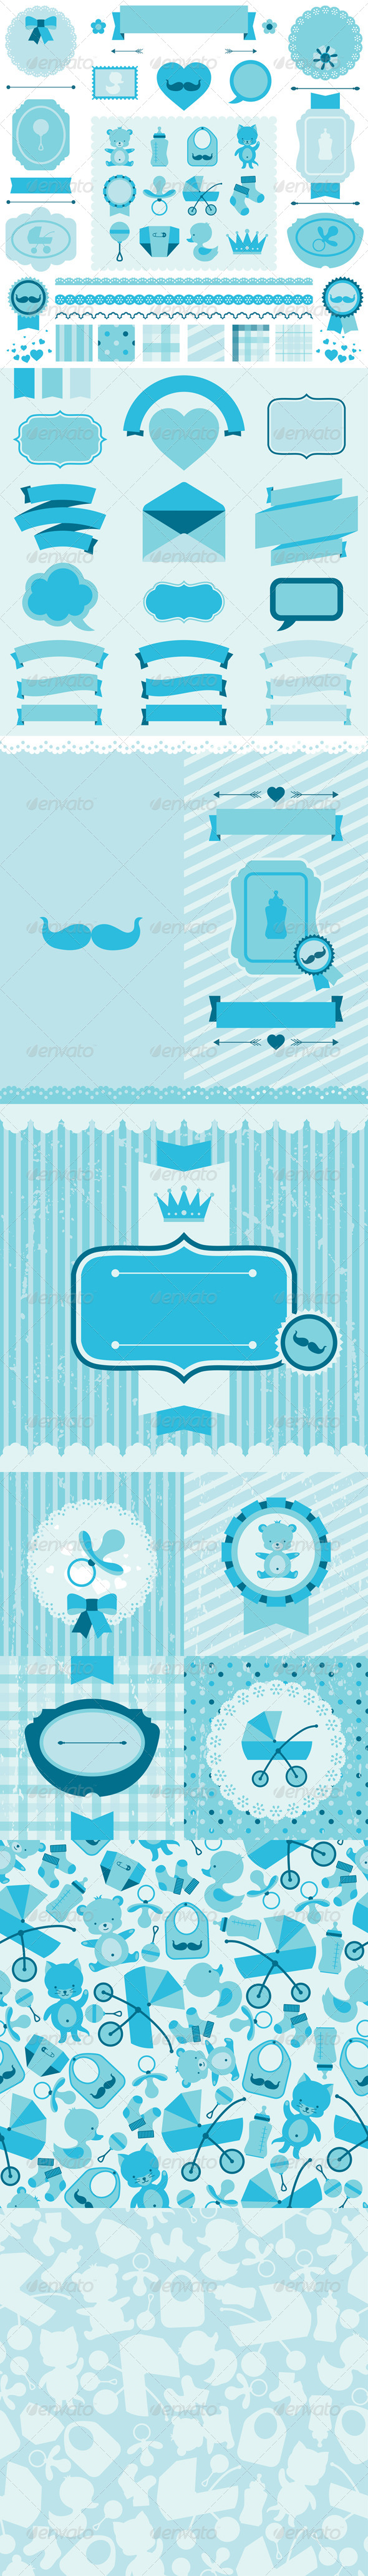 GraphicRiver Boy Baby Shower Elements Backgrounds 6430654